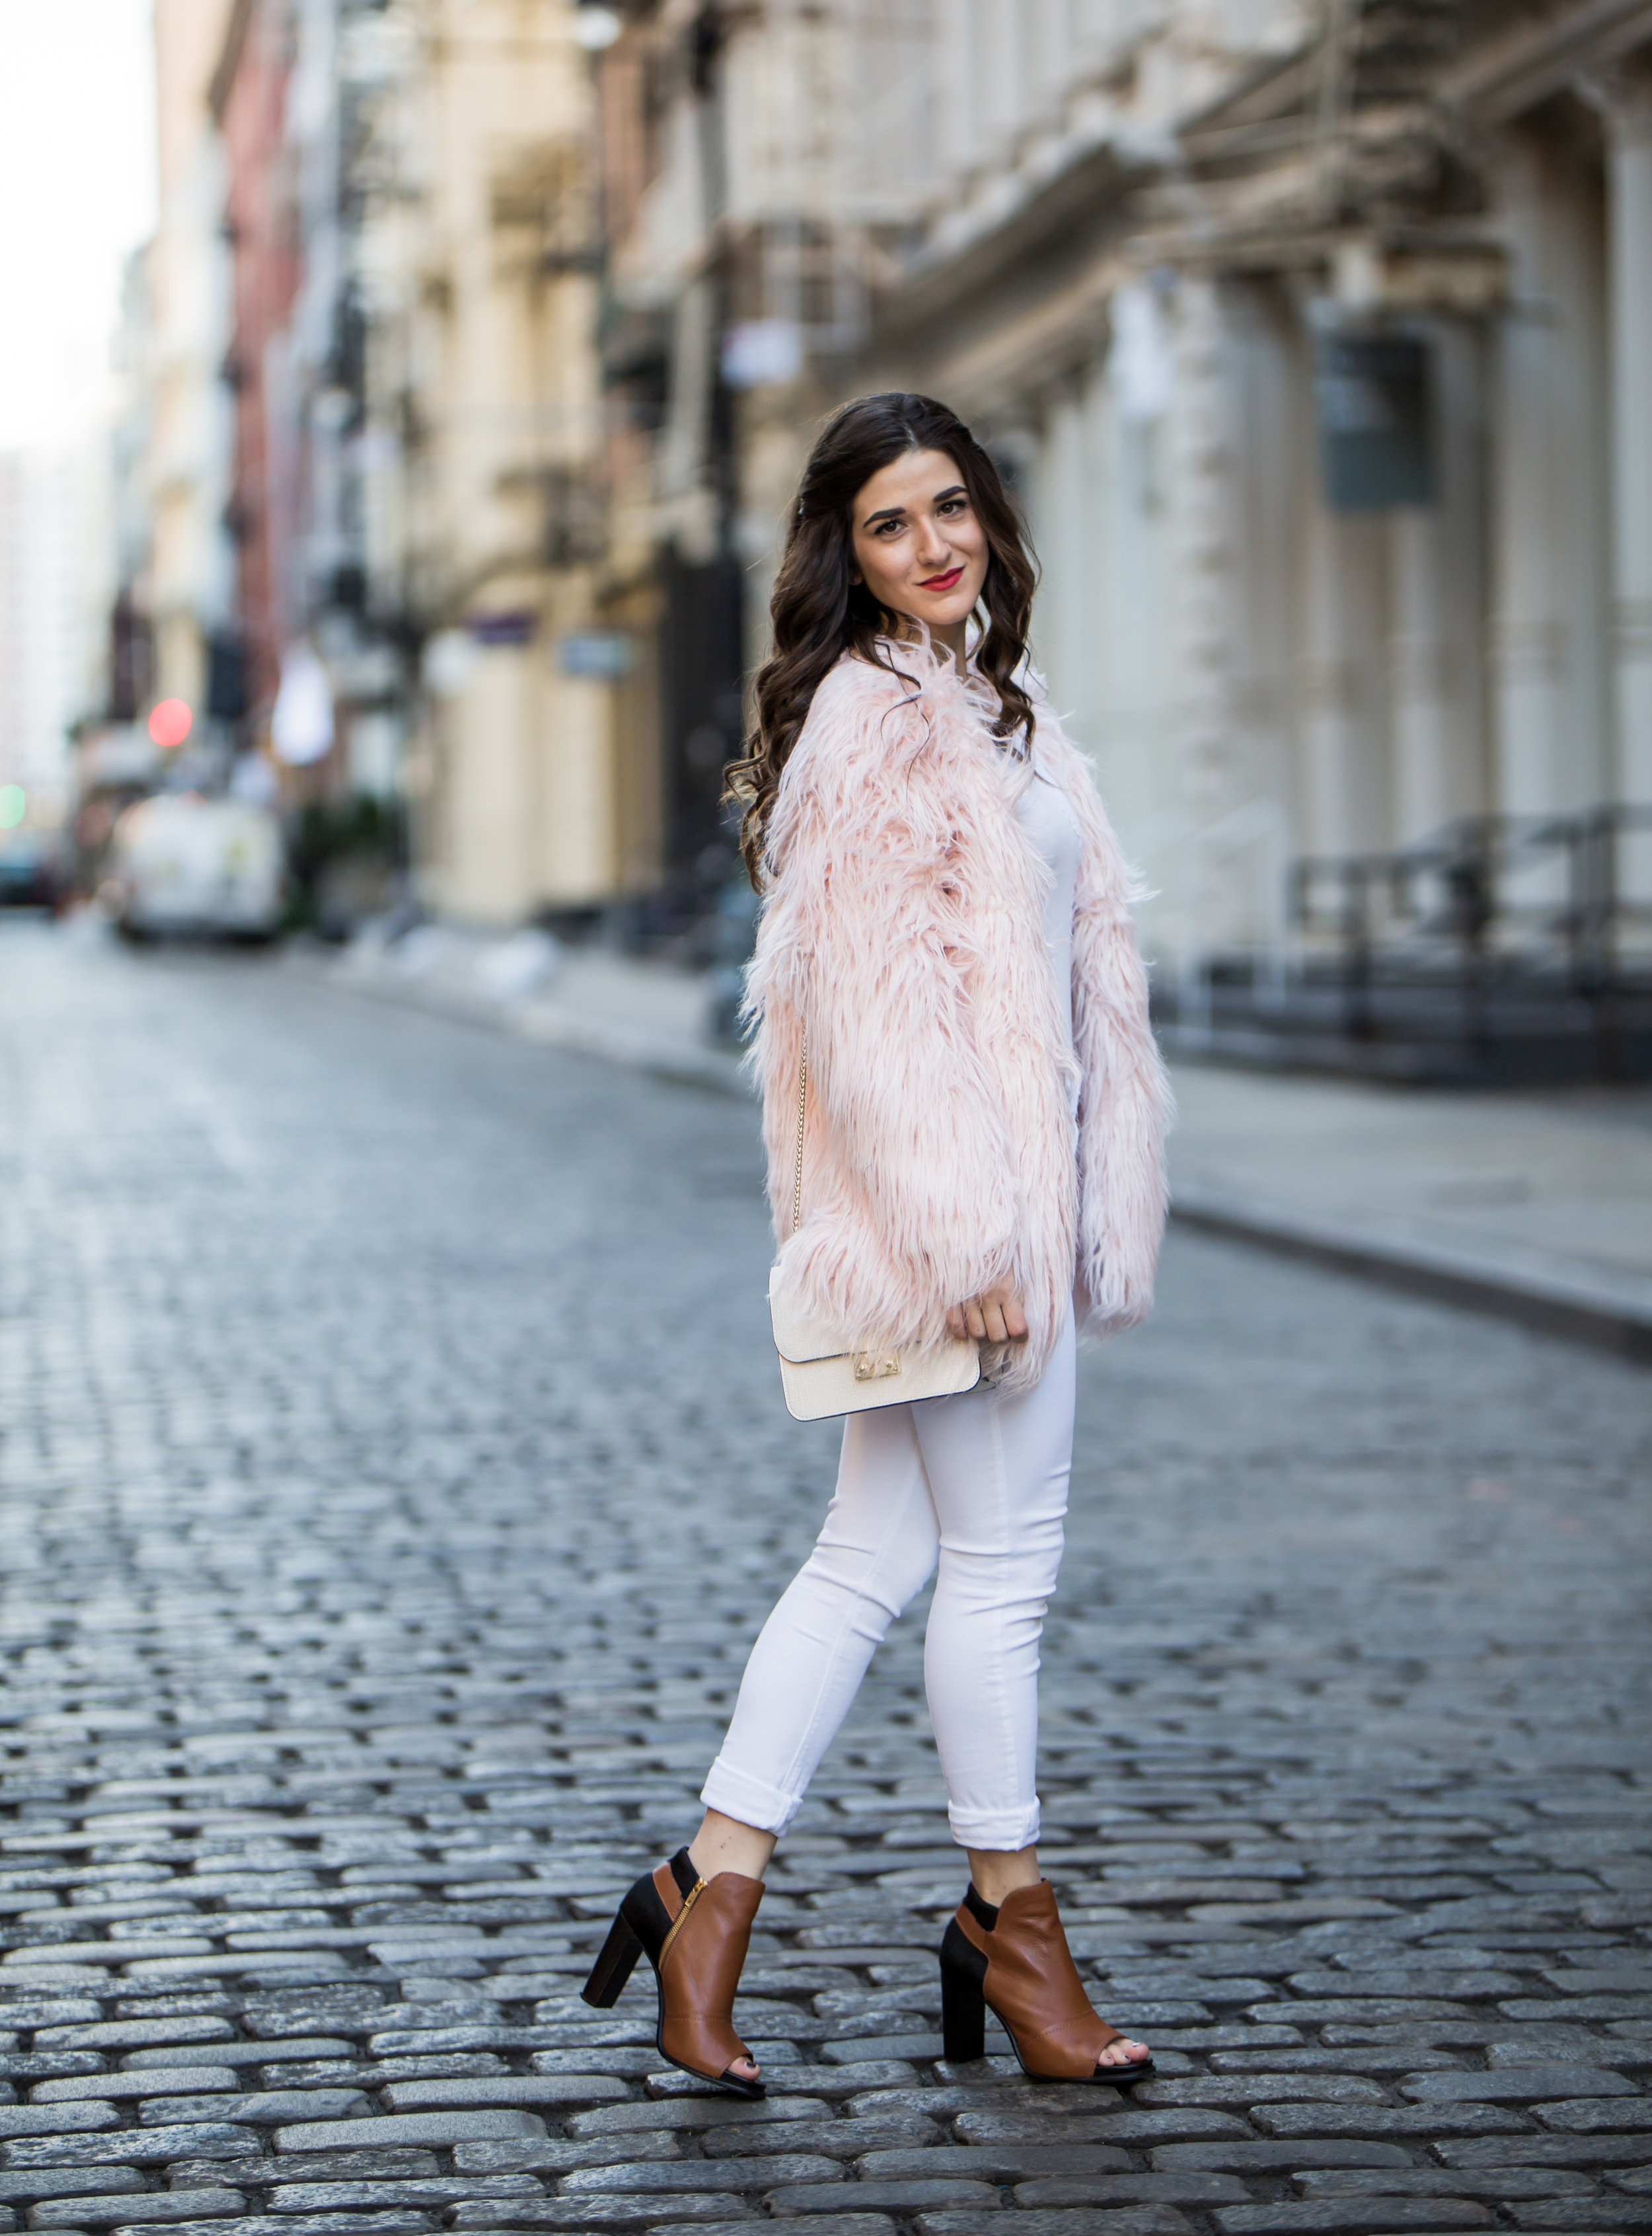 Pink Faux Fur Jacket White Jeans The Best Career Advice Esther Santer Fashion Blog NYC Street Style Blogger Outfit OOTD Trendy Winter Whites Henri Bendel Bag Tan Booties Girl Women Shop Sale Hair What To Wear Wearing Model Photoshoot Shoes Accessories.jpg